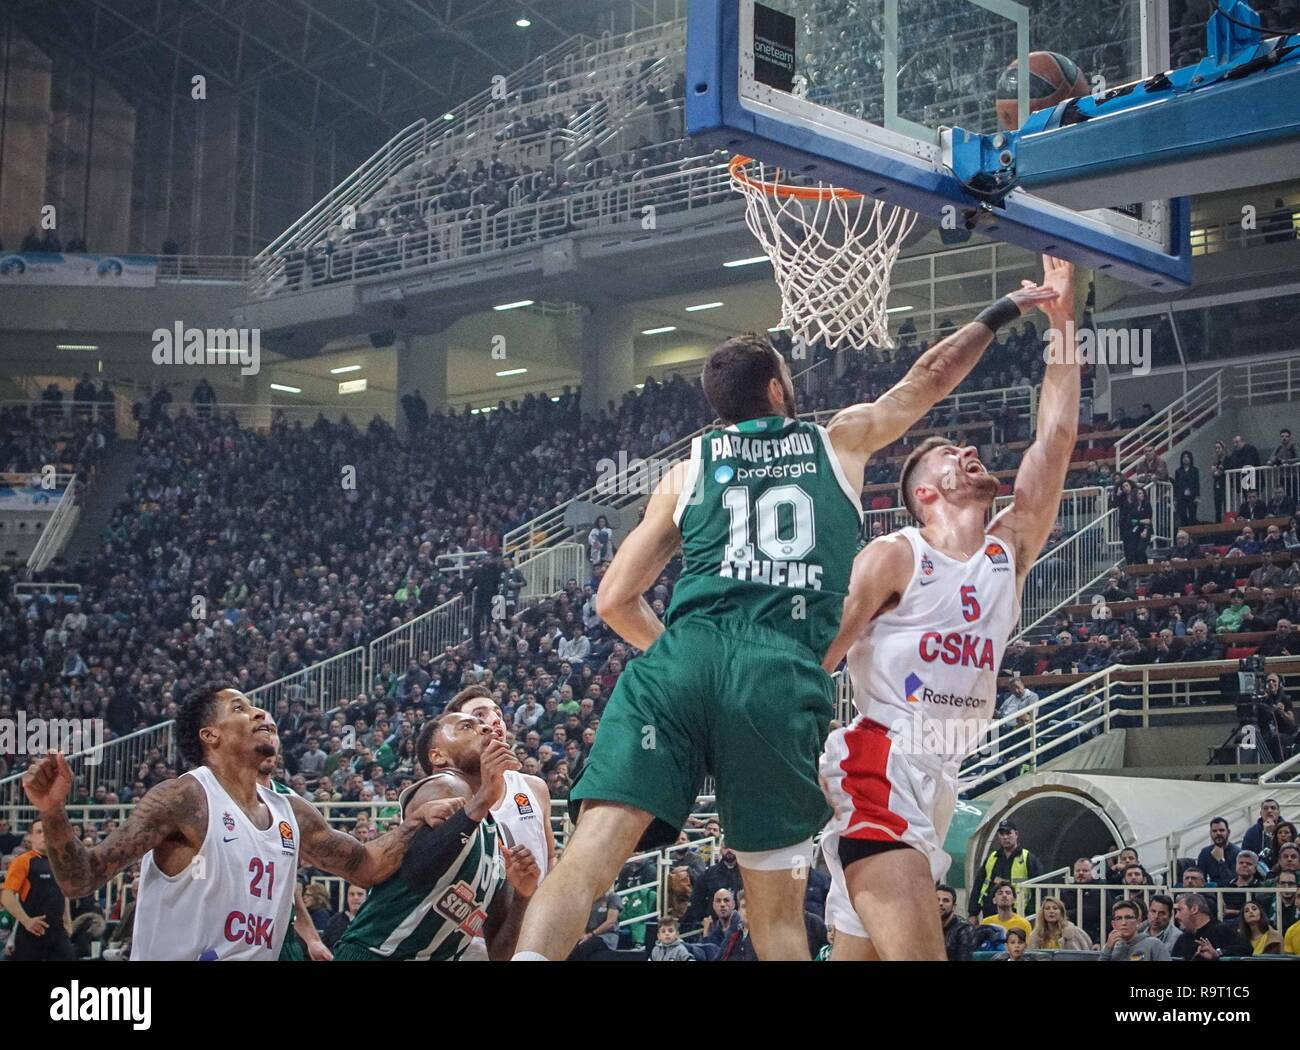 dd870367203 Basketball Match In Moscow Stock Photos   Basketball Match In Moscow ...